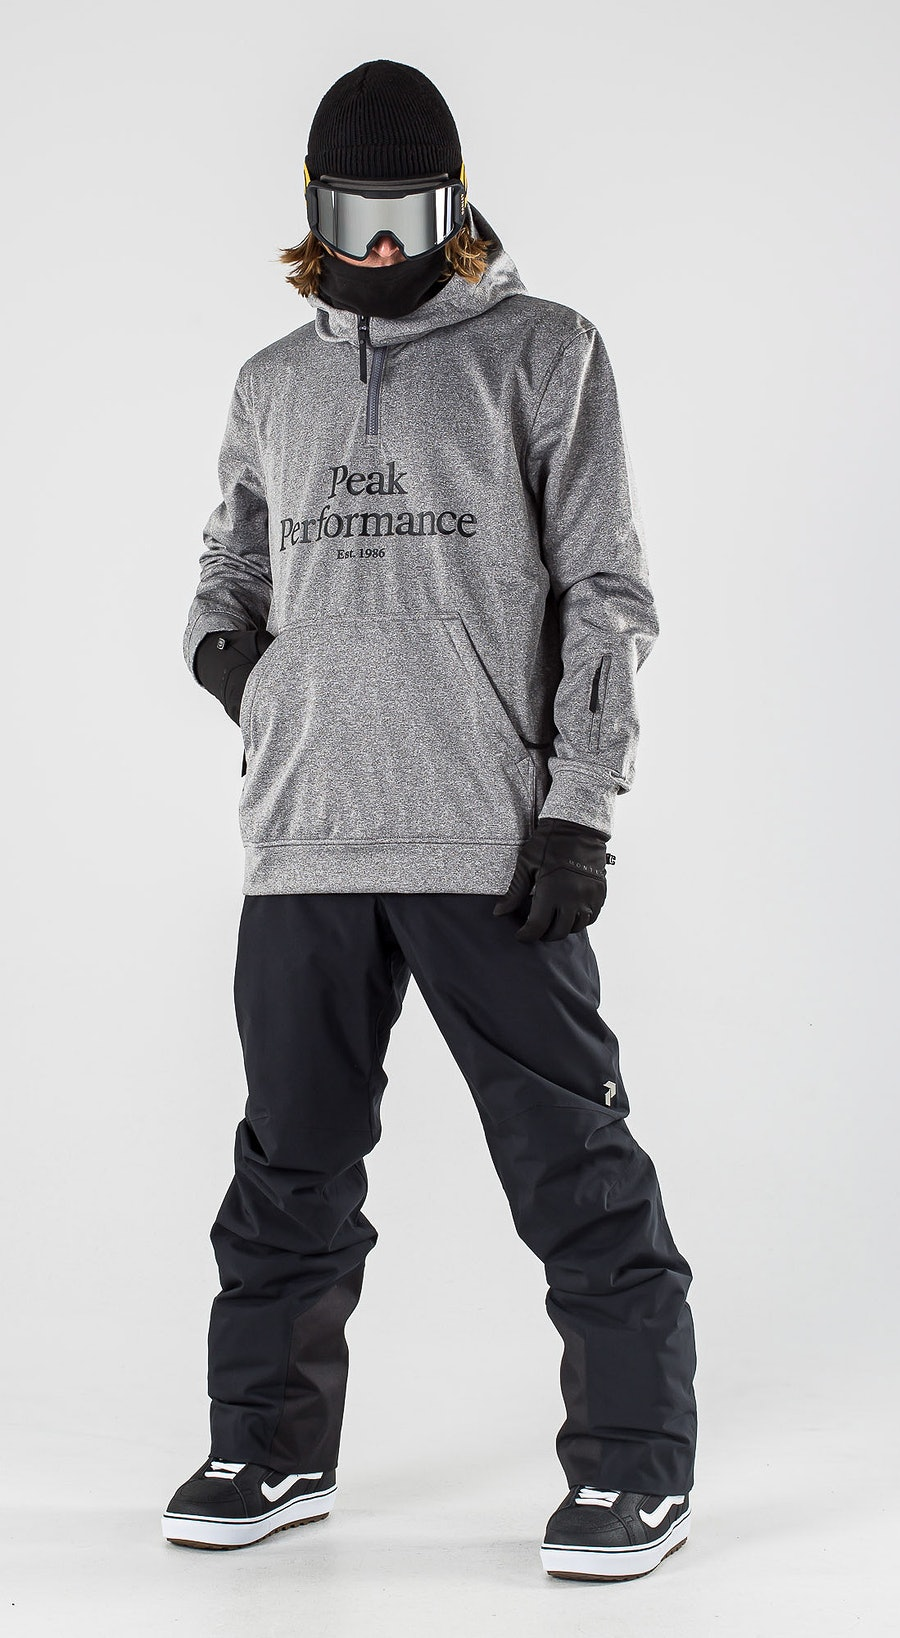 Peak Performance Original Ski SS Grey melange Snowboardkläder Multi